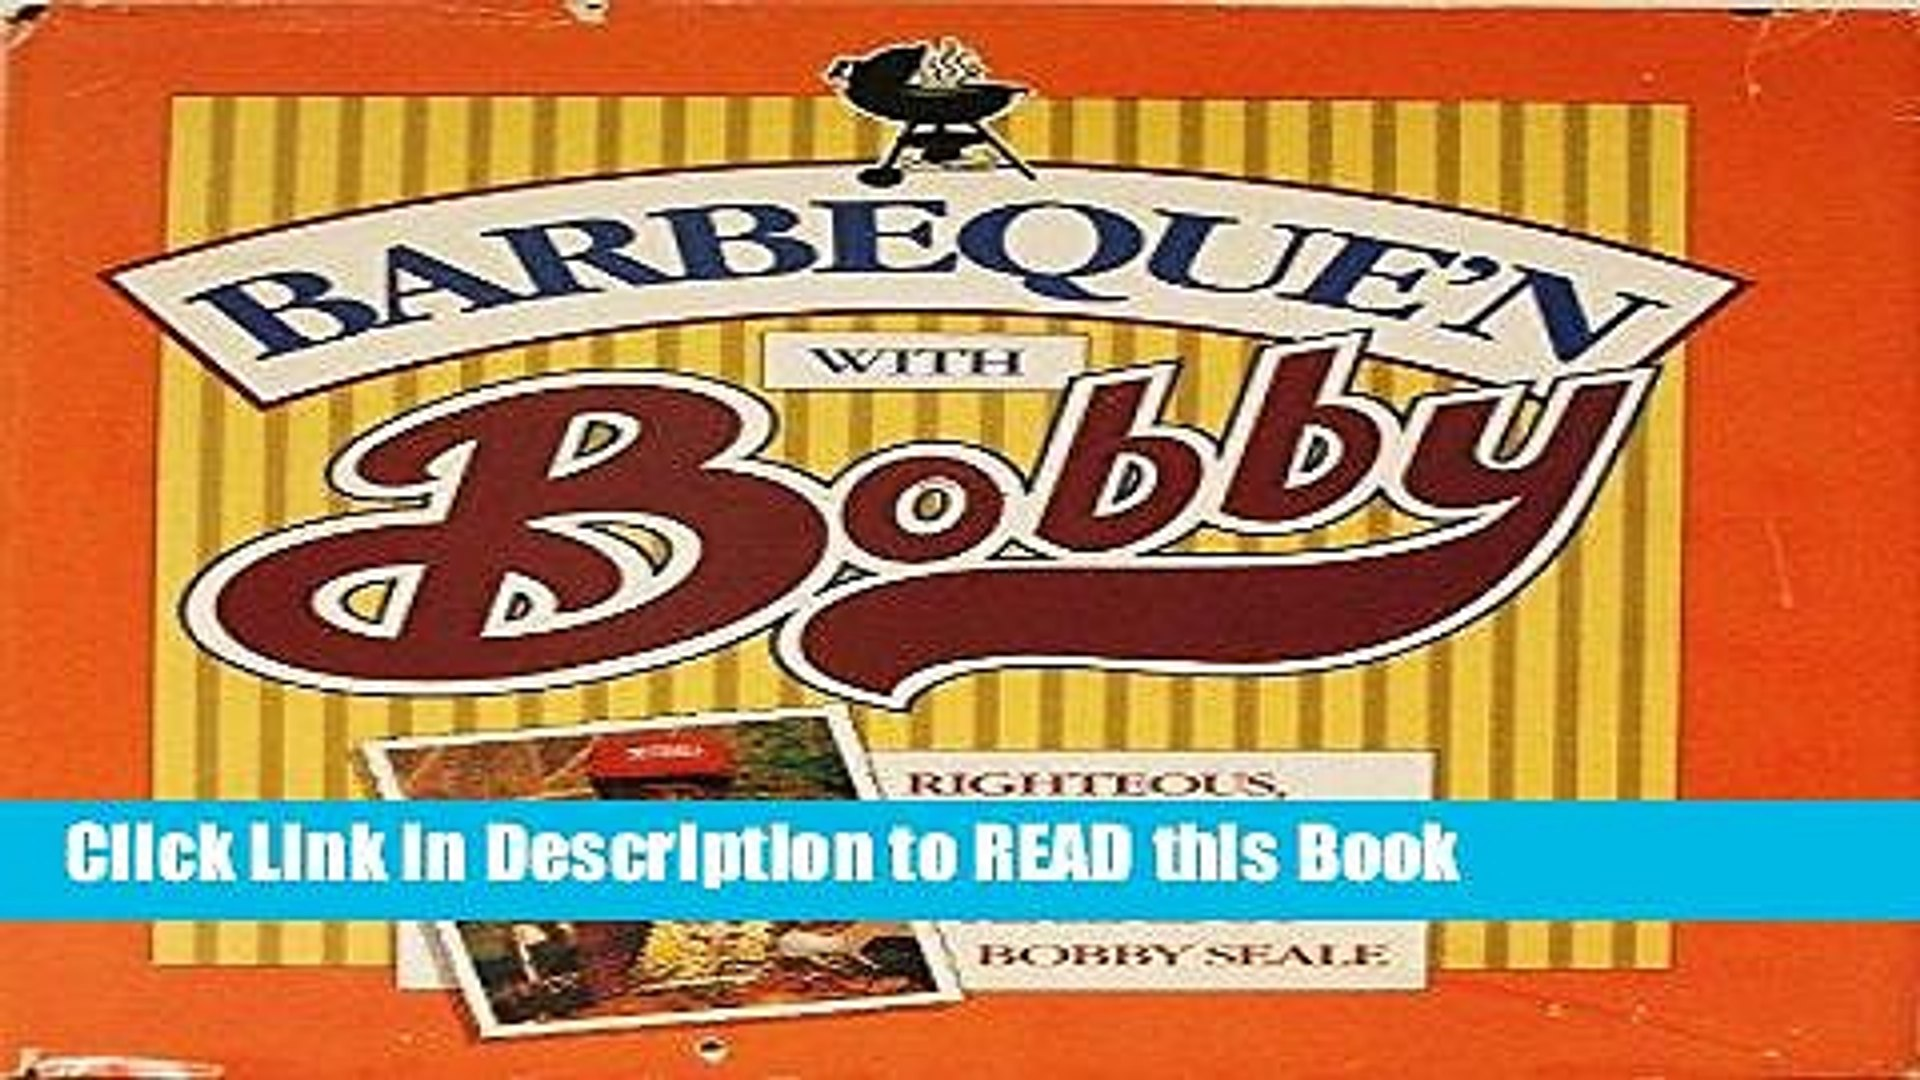 Download eBook Barbeque N With Bobby: Righteous, Down-Home Barbeque Recipes by Bobby Seale eBook